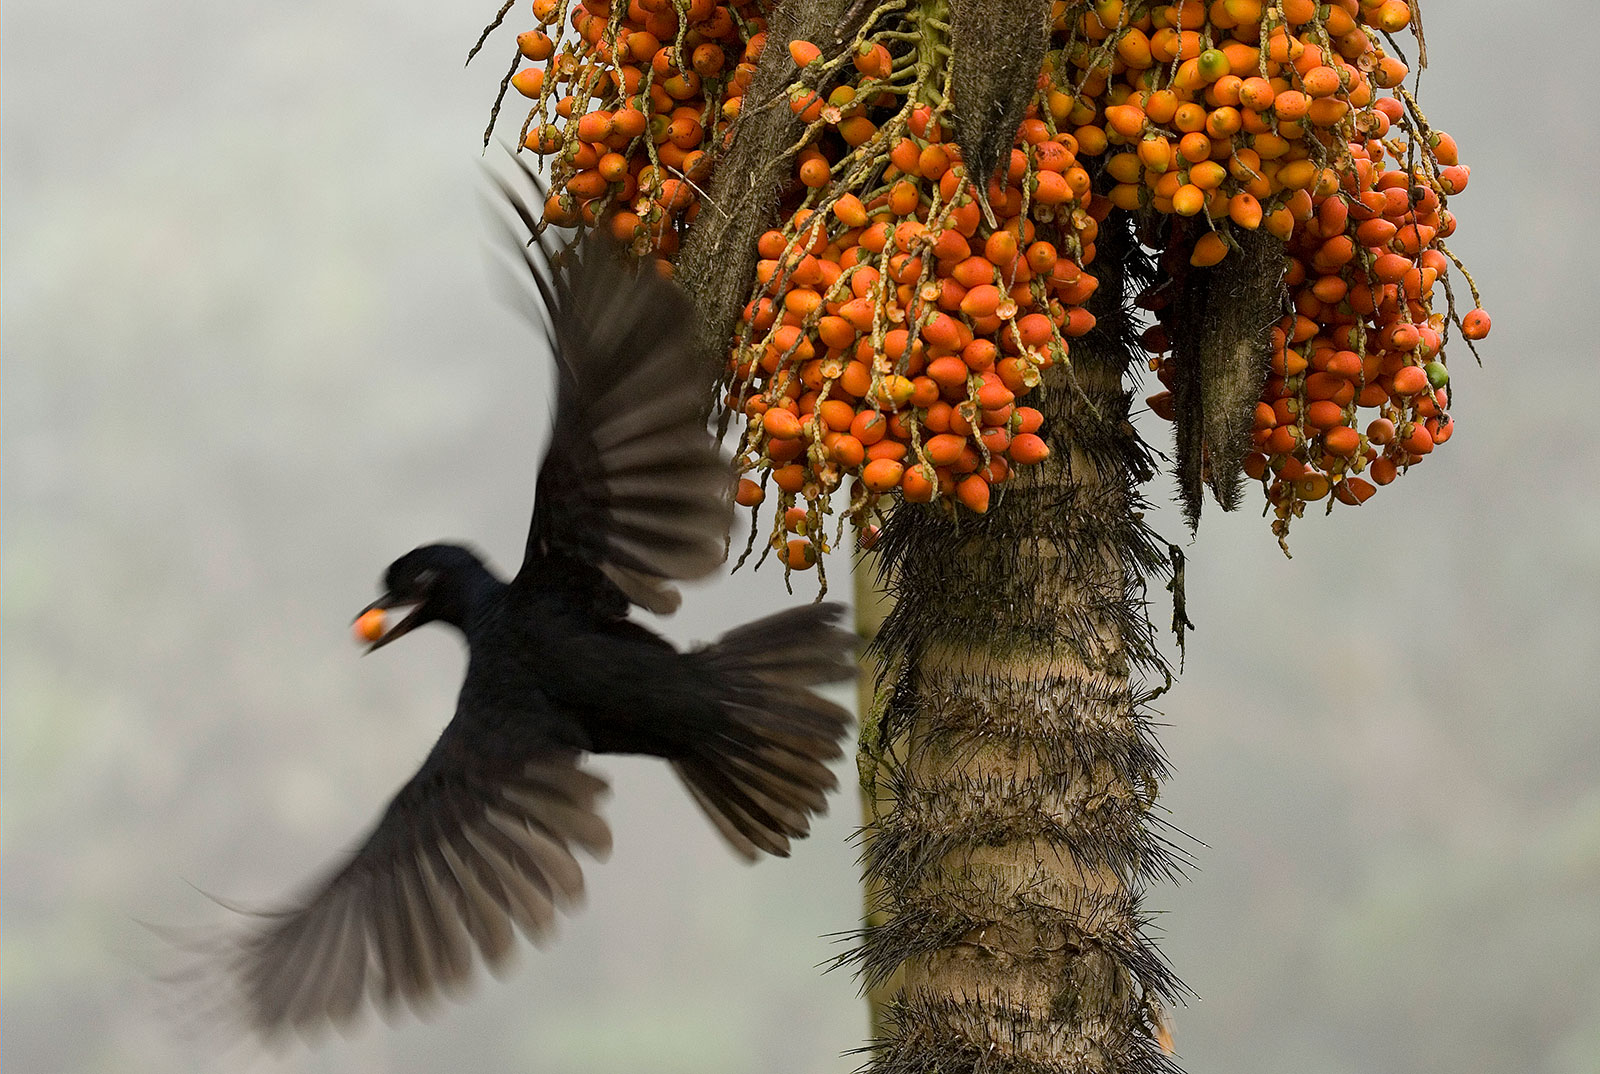 A bird flies away from a fruit-laden tree after taking a bright orange fruit for itself